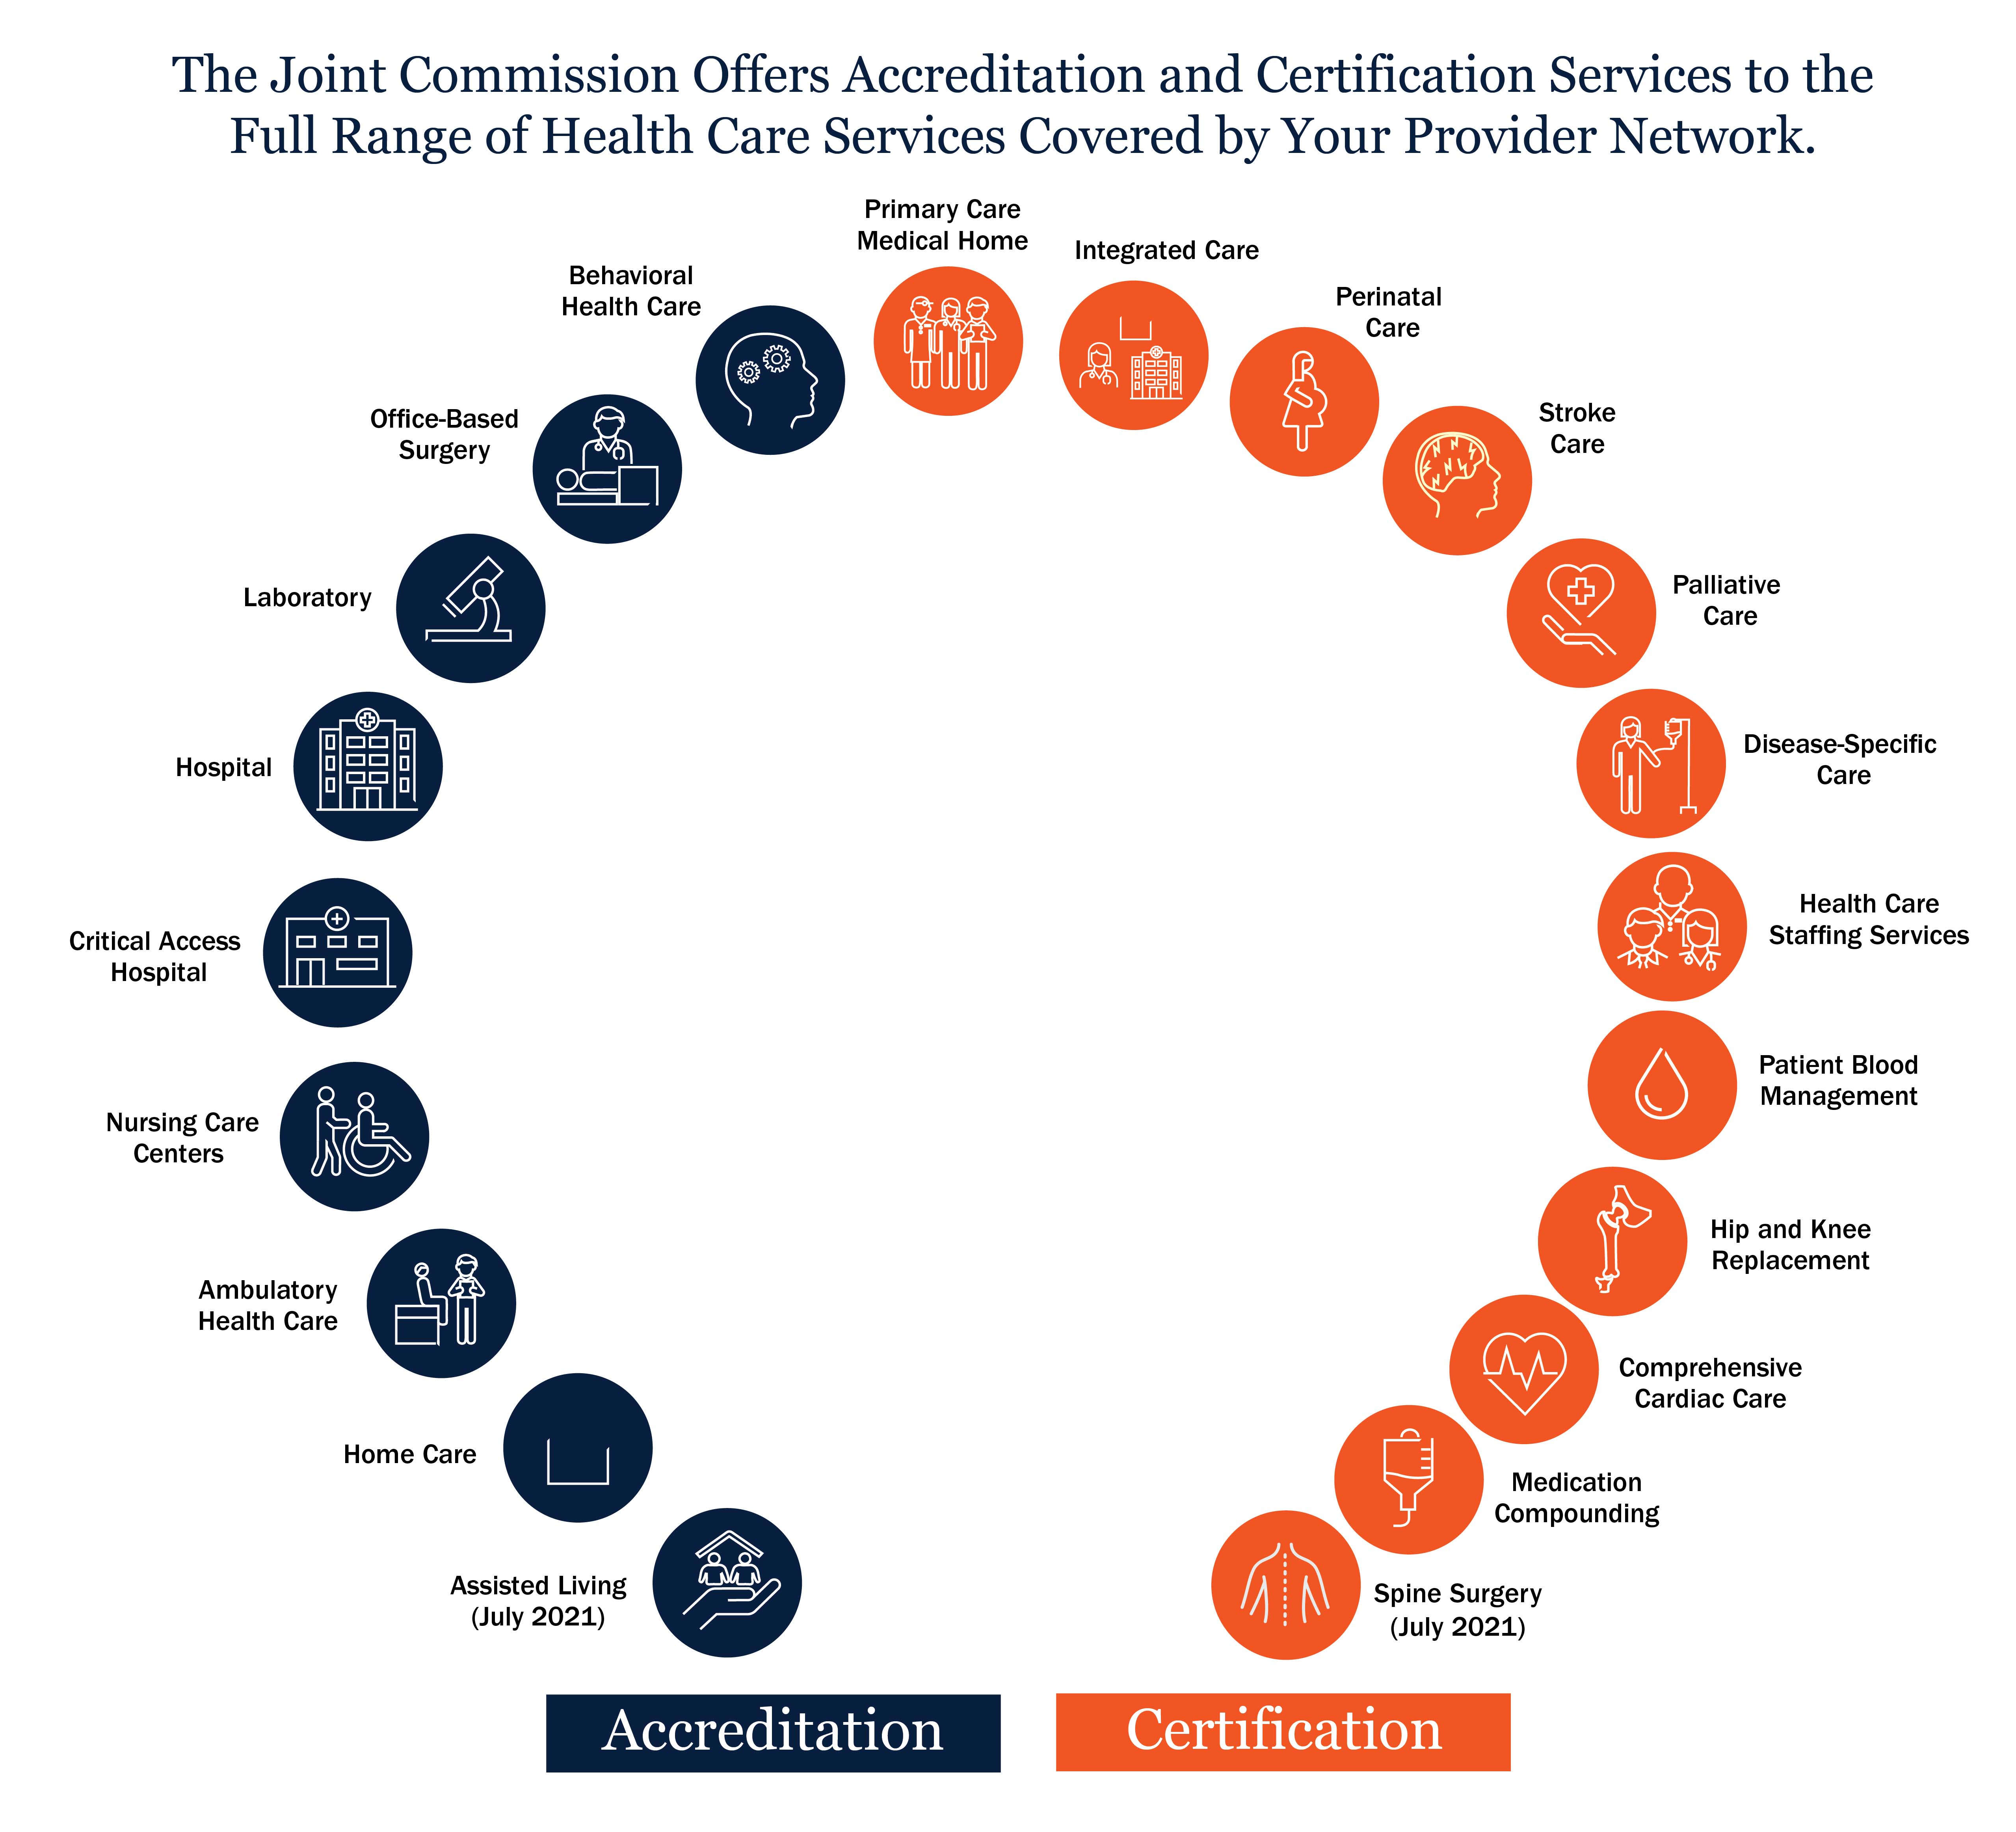 The Joint Commission offers accreditation and certification services to the full range of health care services covered by your provider network. Accreditation is available for behavioral health care, office-based surgery, laboratory, hospital, critical access hospital, nursing care centers, ambulatory health care, and home care. Certification is available for primary care medical home, integrated care, perinatal care, stroke care, palliative care, disease-specific care, health care staffing services, patient blood management, hip and knee replacement, comprehensive cardiac care, and medication compounding.